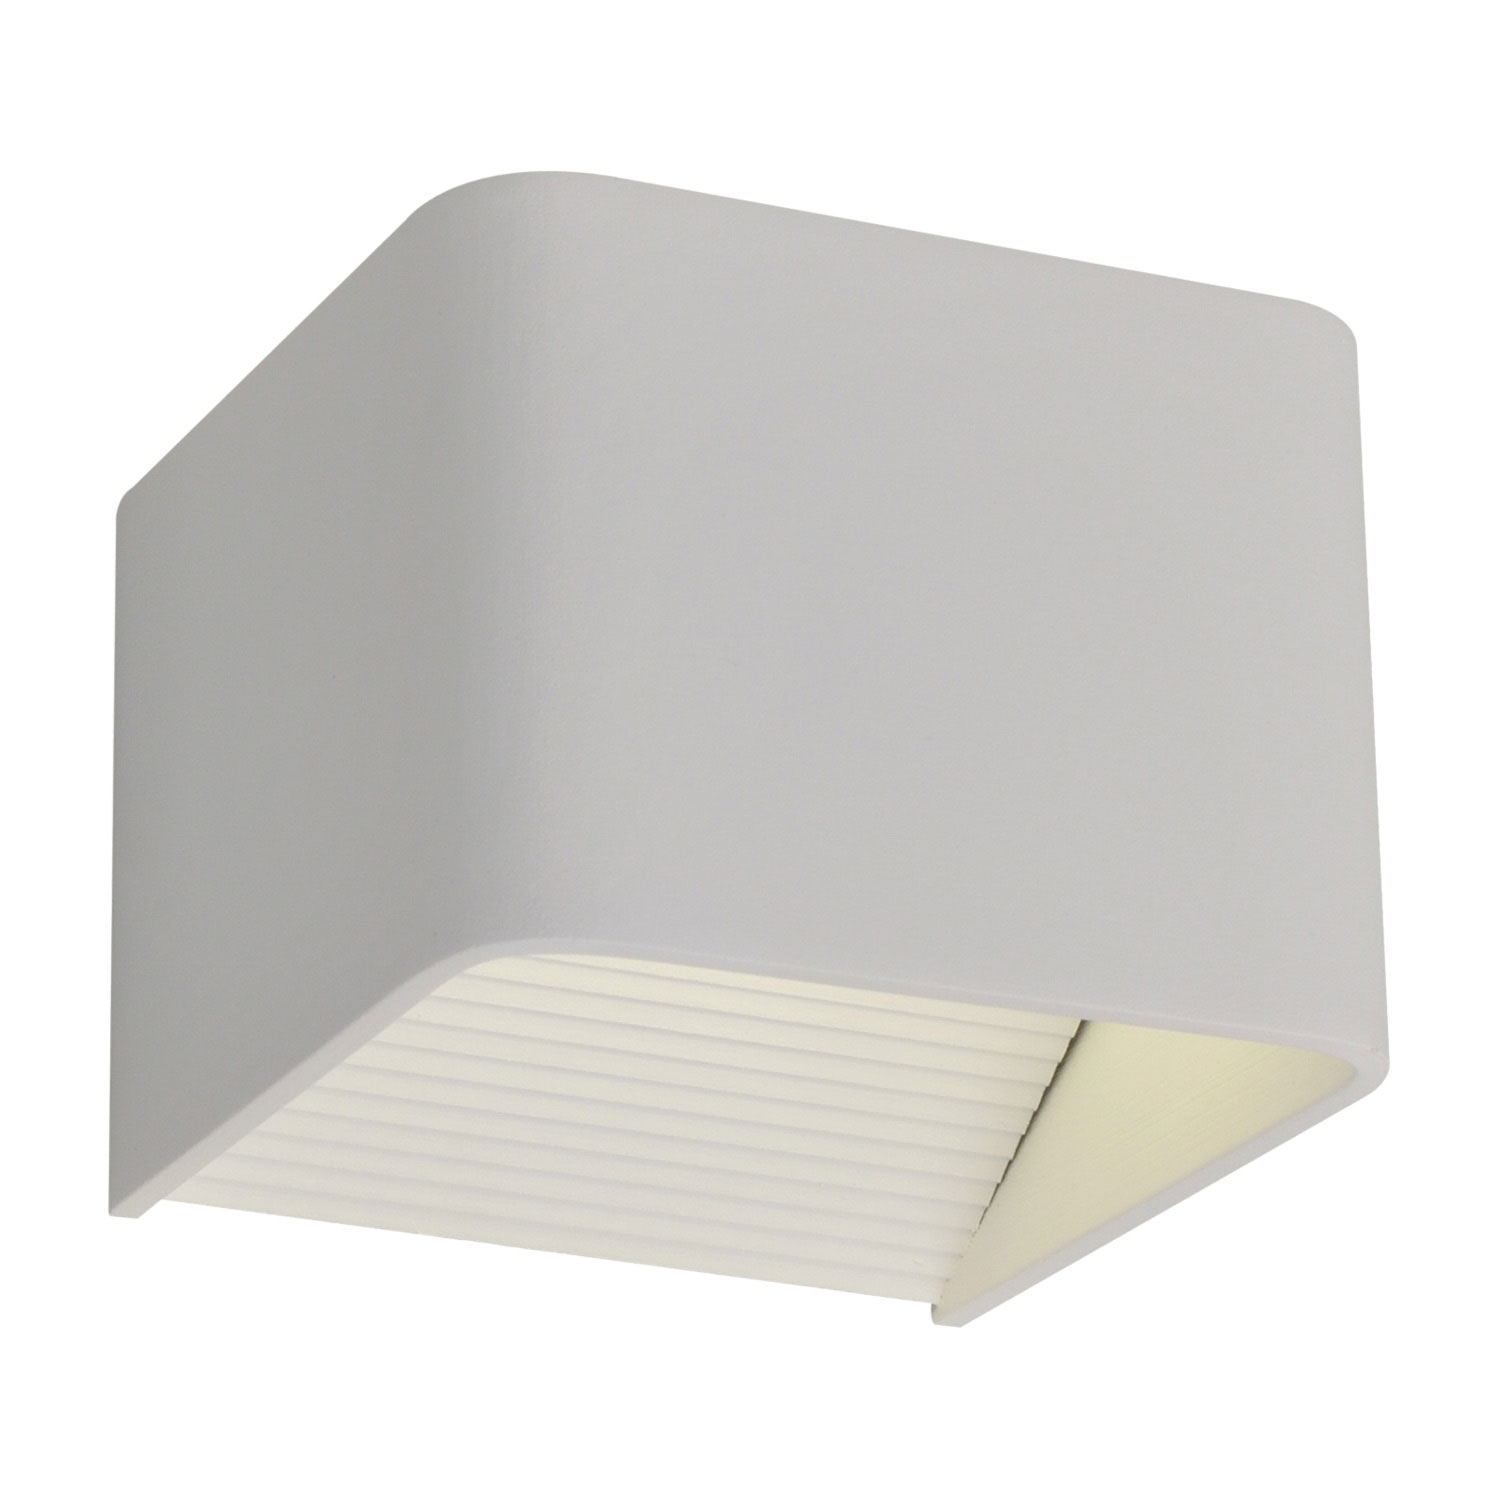 Apliques De Pared Led Apliques Led Pared Aplique Led Aplique  ~ Apliques De Pared Para Escaleras